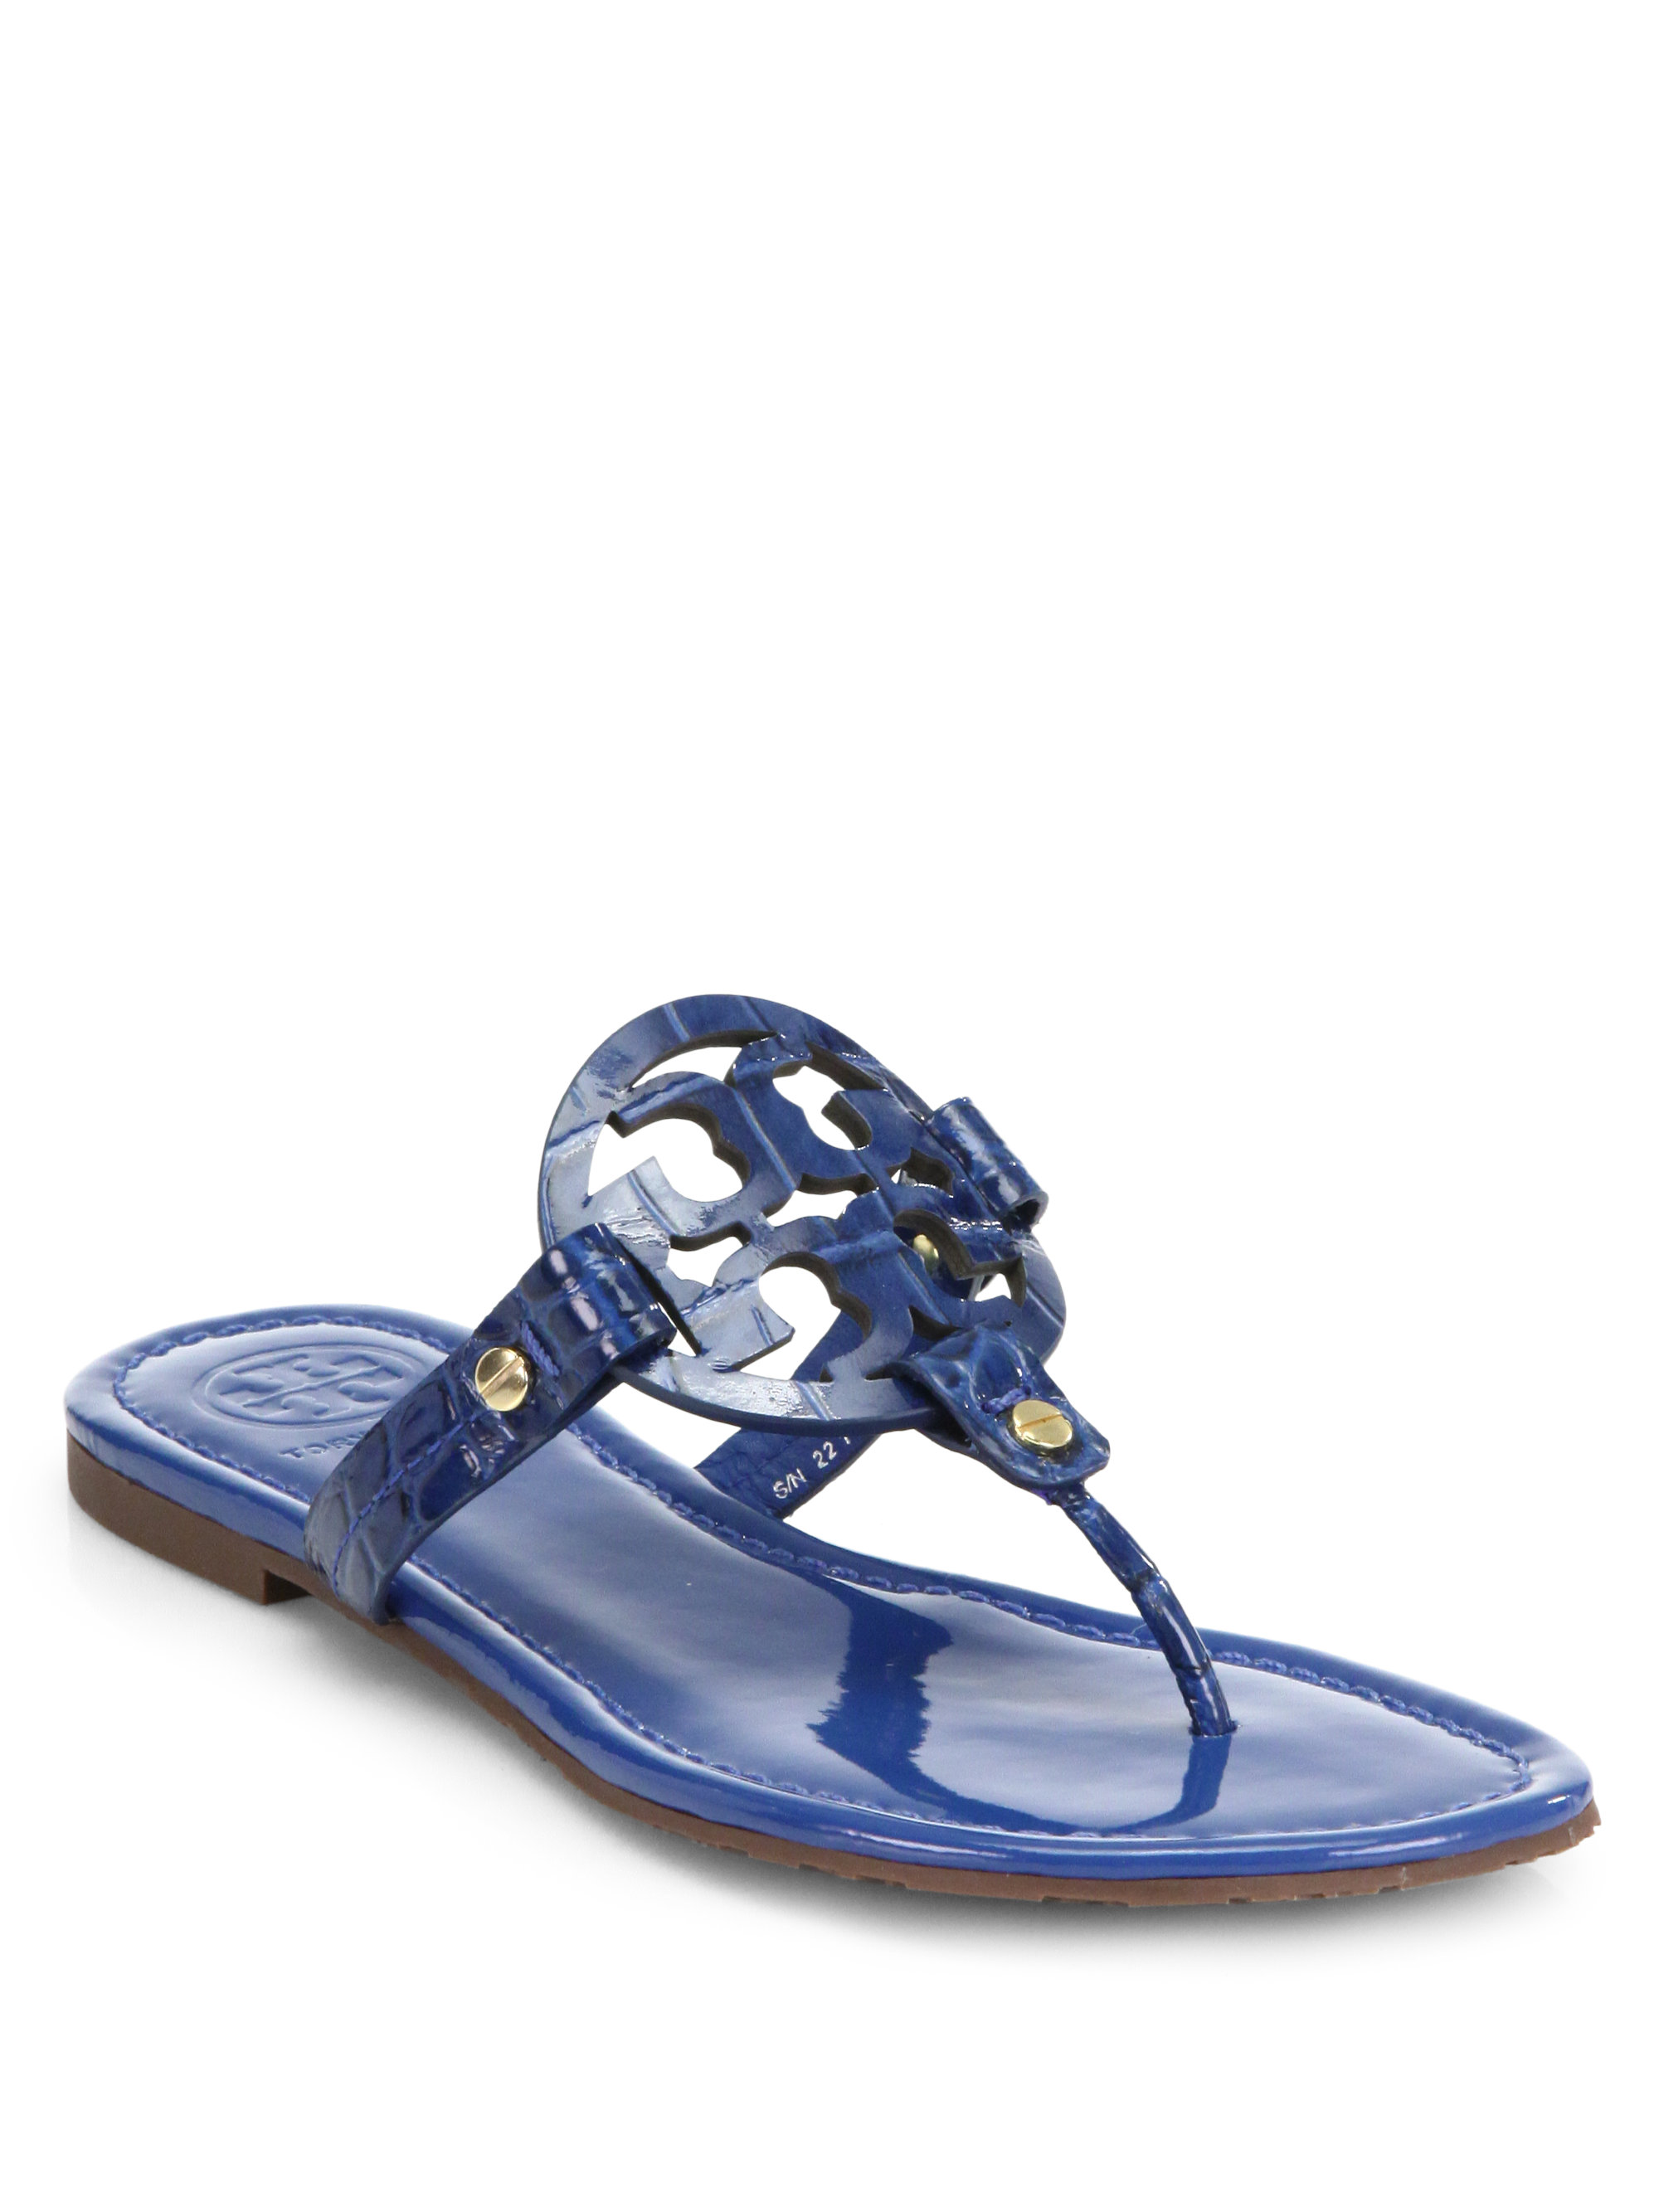 0e6d232a401b37 Lyst - Tory Burch Miller Crocodileembossed Patent Leather Sandals in ...